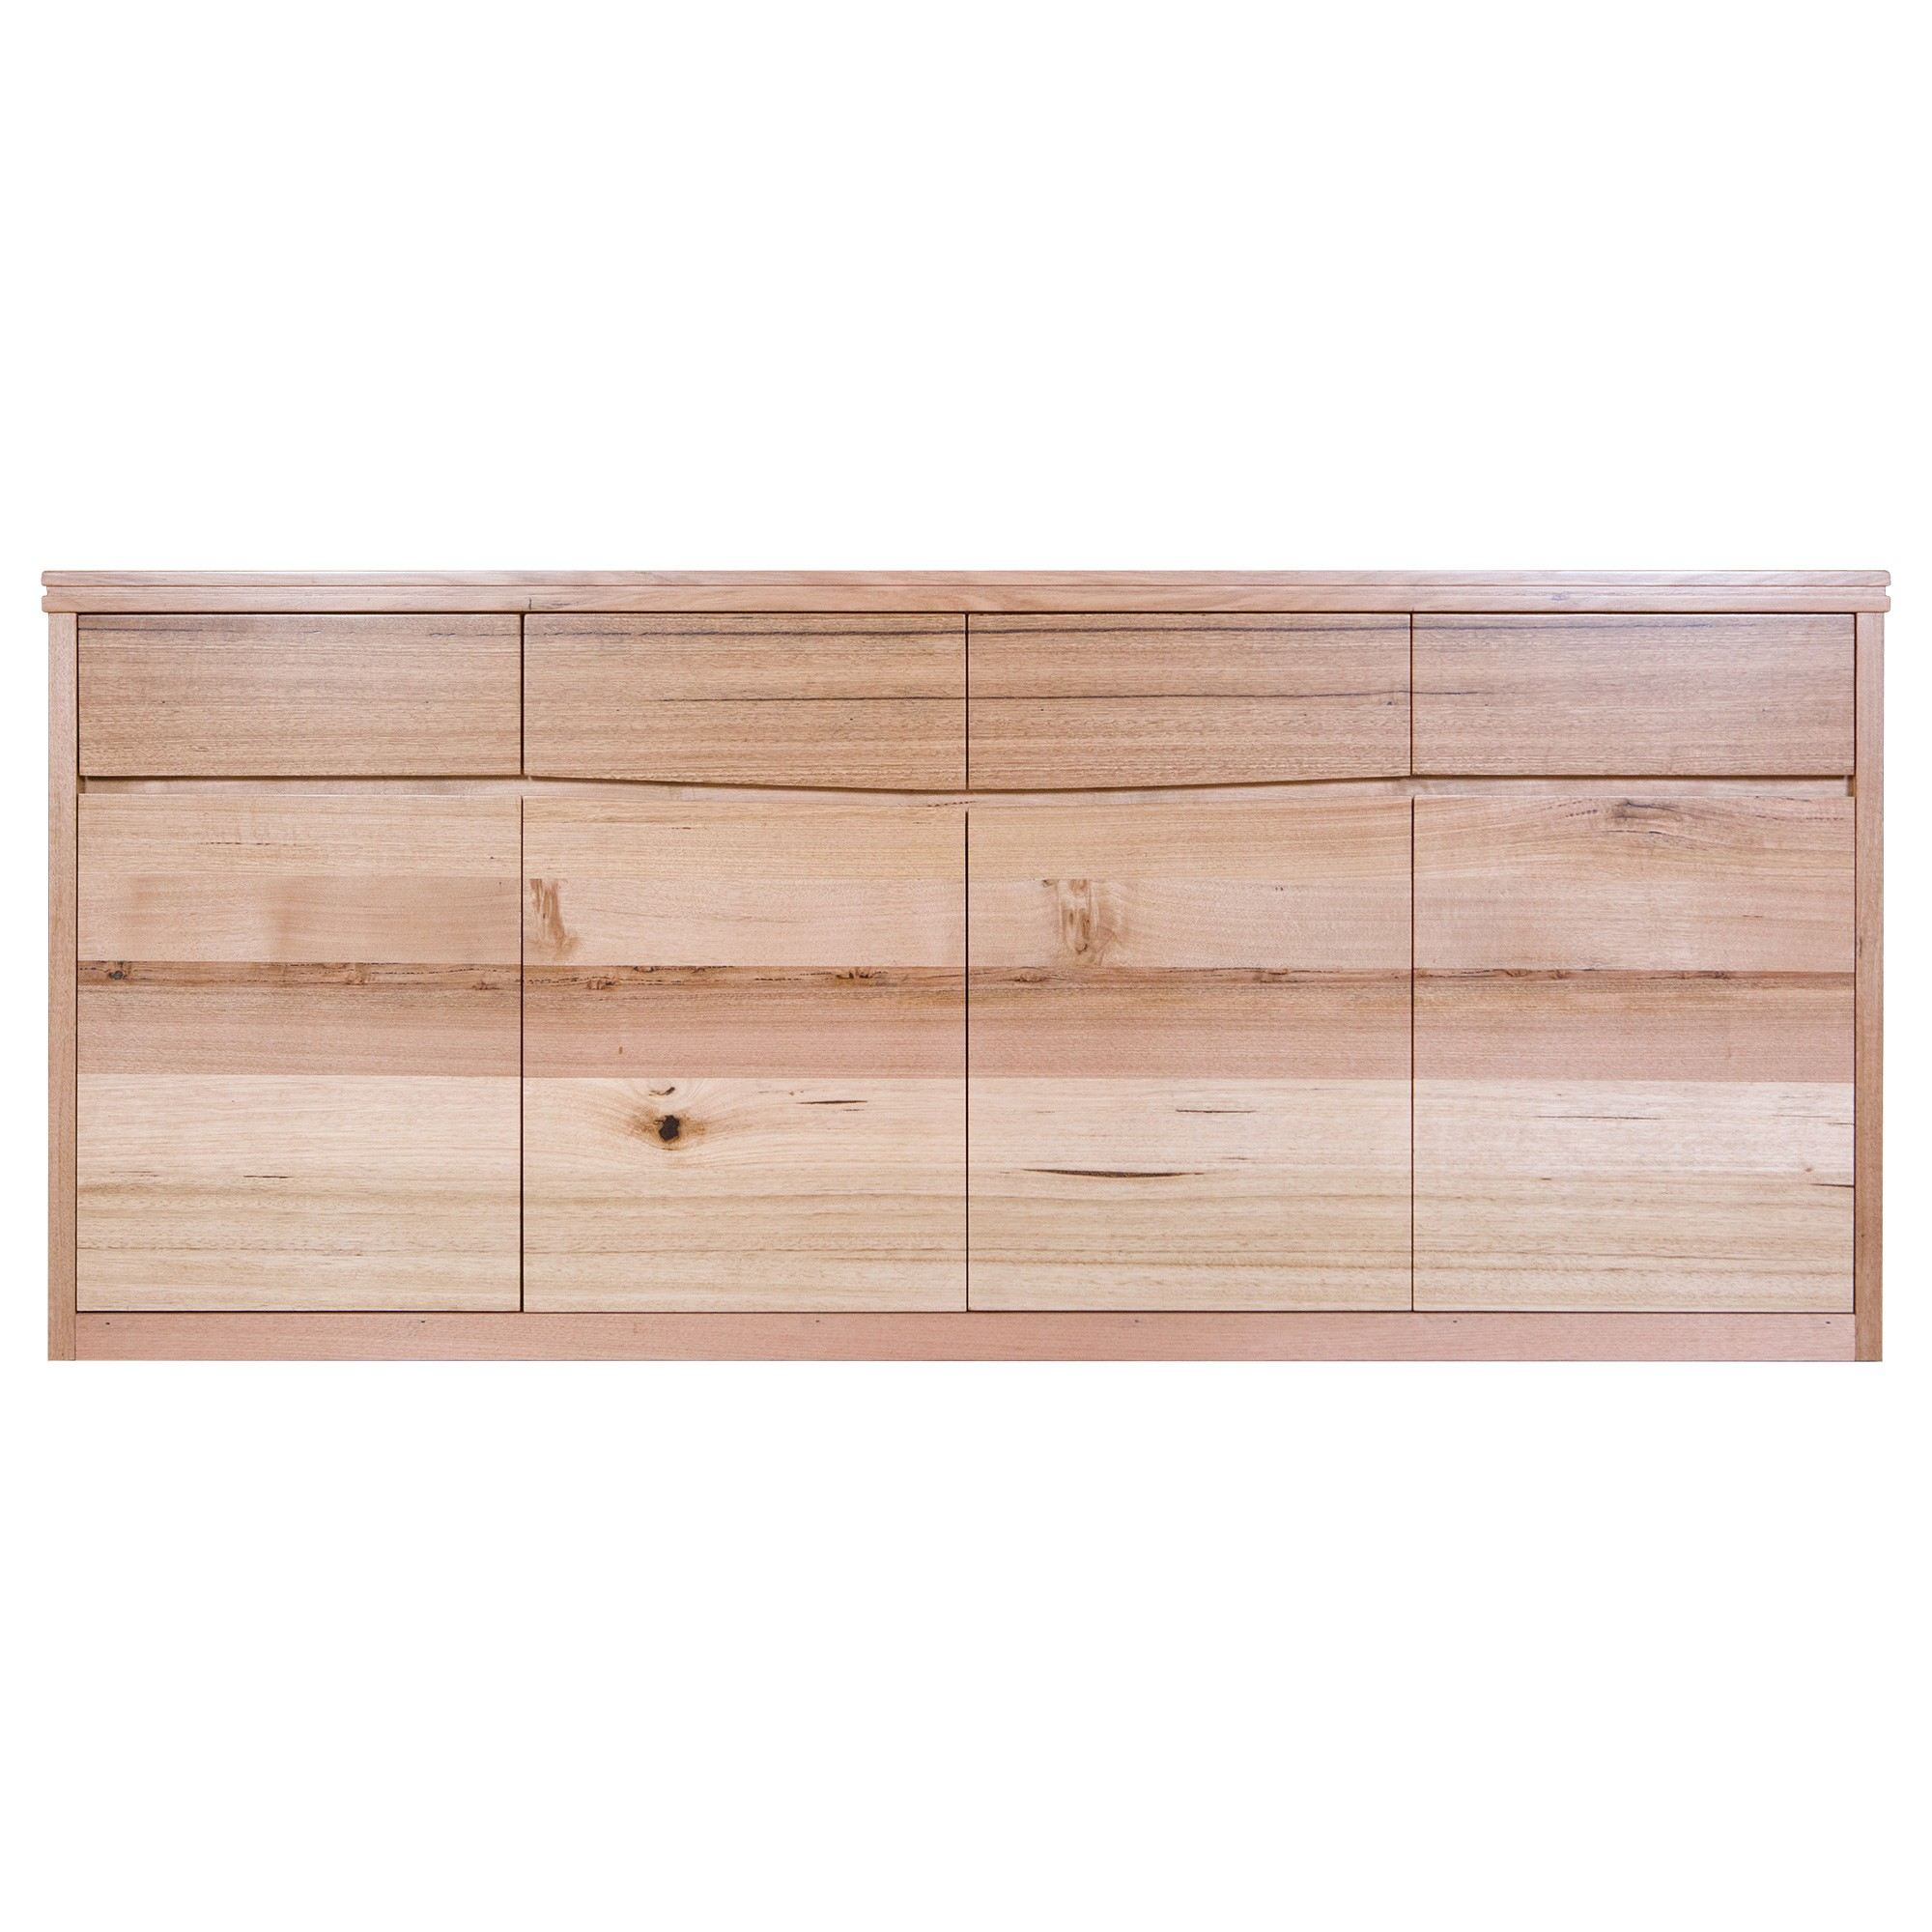 Irsia Tasmanian Oak Timber 4Door 4 Drawer Buffet Table, 200cm